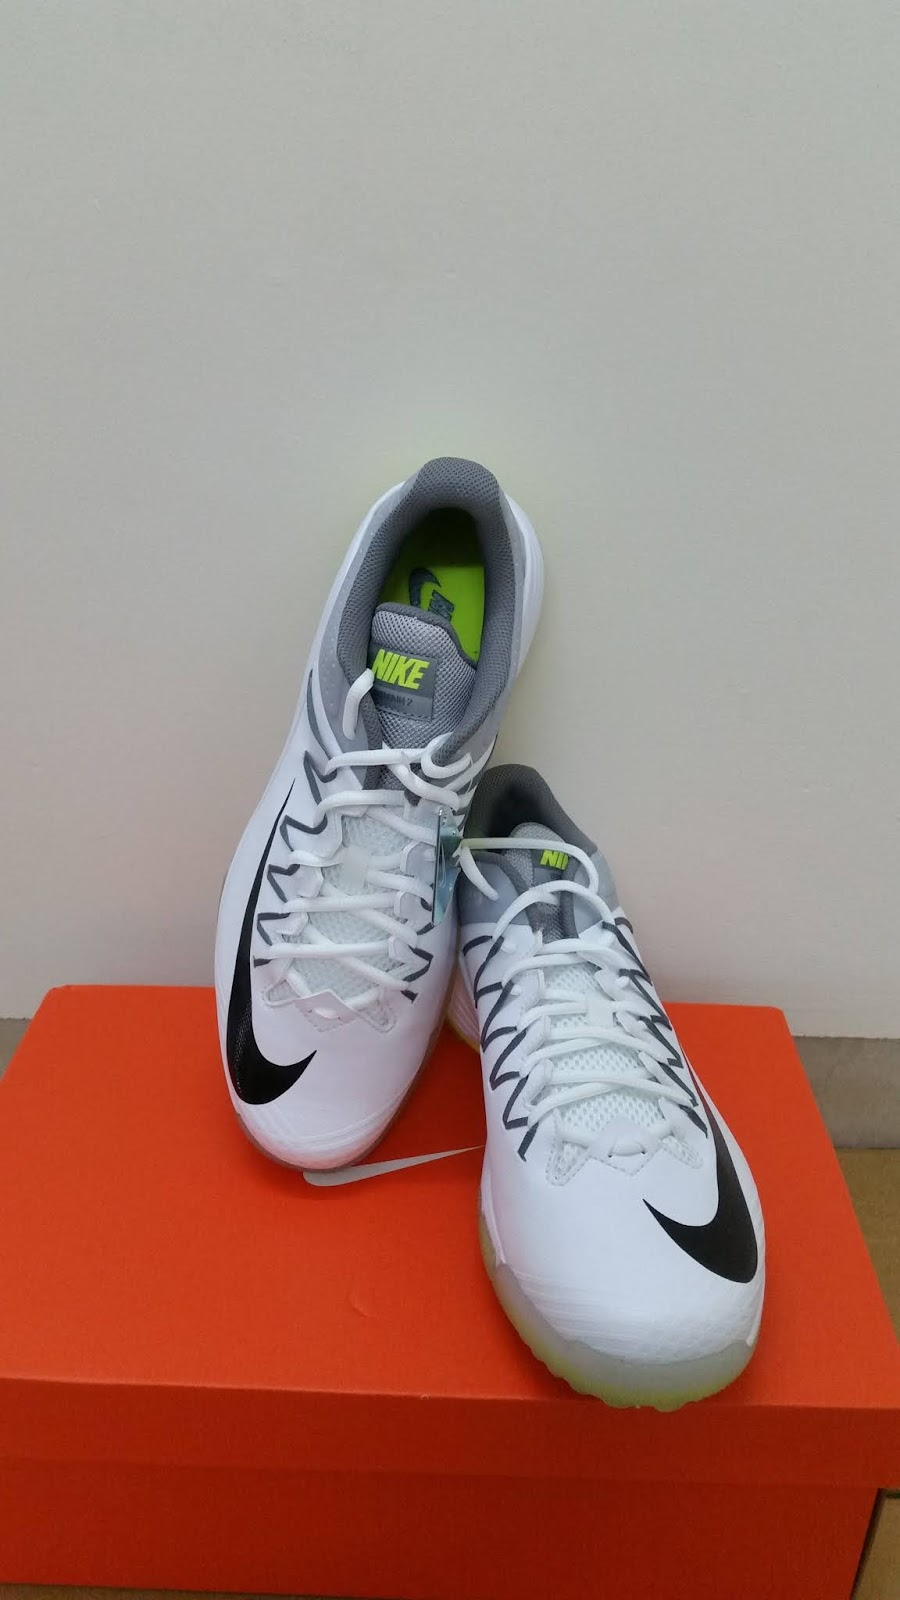 d18335954c99 So they can be utilized while playing professional out-door tournaments.  The Nike DOMAIN 2 are full metal spikes cricket shoes which are removable  ...